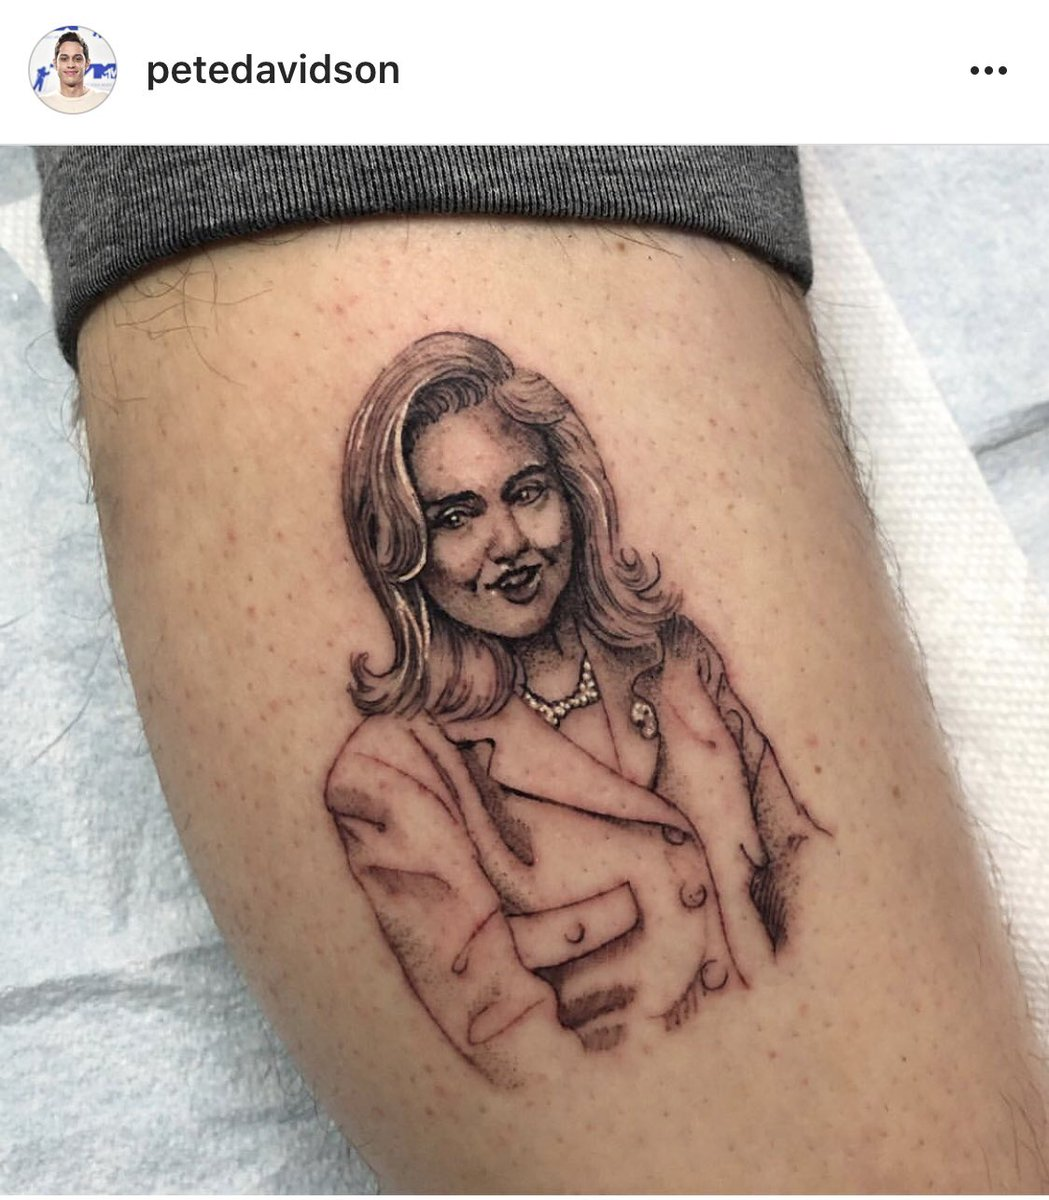 RT @JillianSed: Hillary Clinton responded to Pete Davidson's tattoo of her face and I think Pete's dead now. https://t.co/Bisq3wKMSv